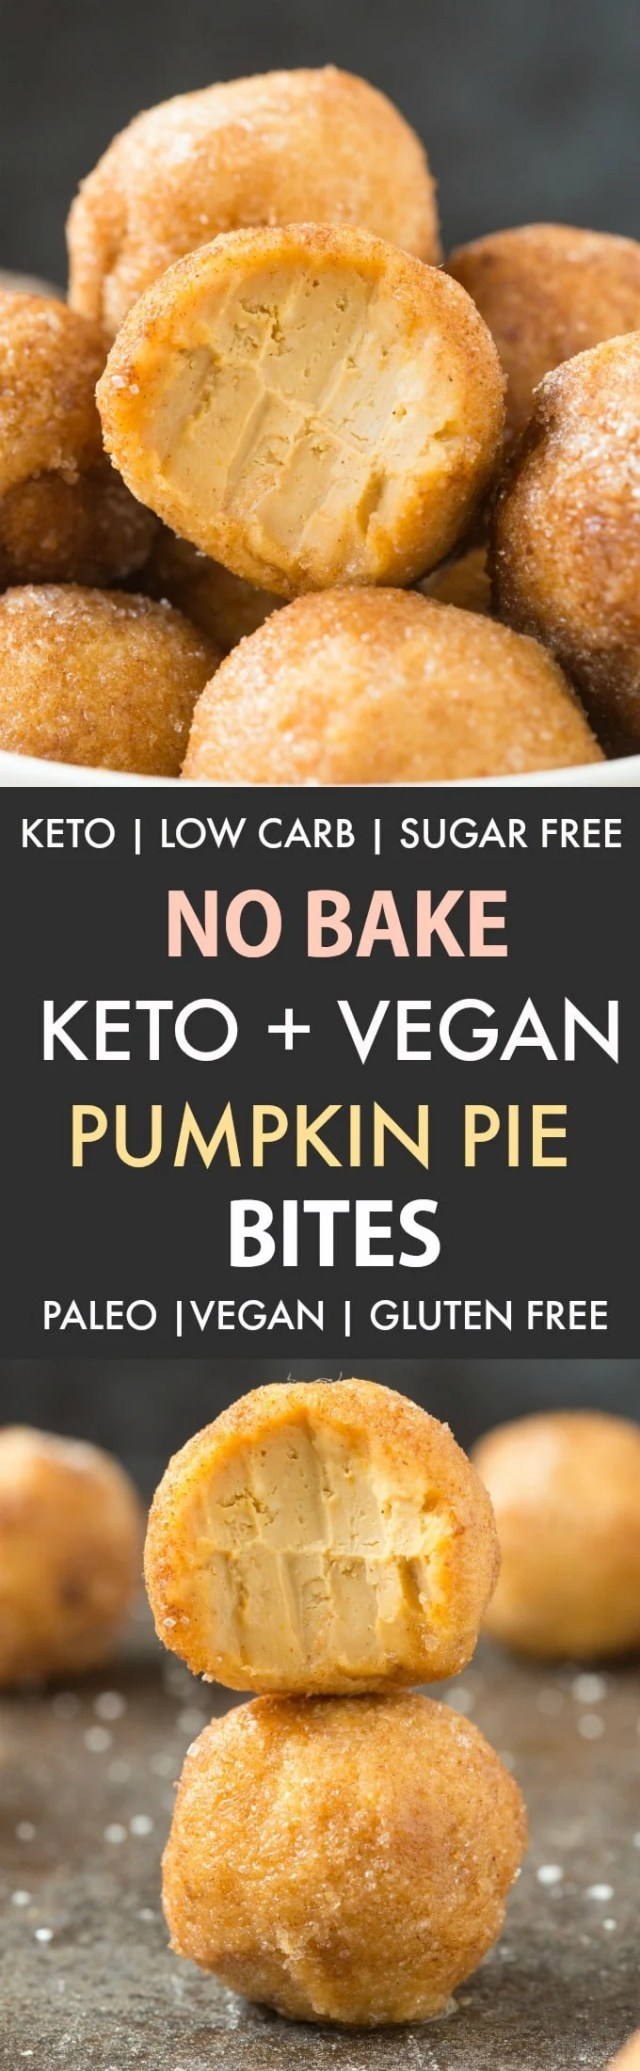 No Bake Keto Low Carb Pumpkin Pie Bites